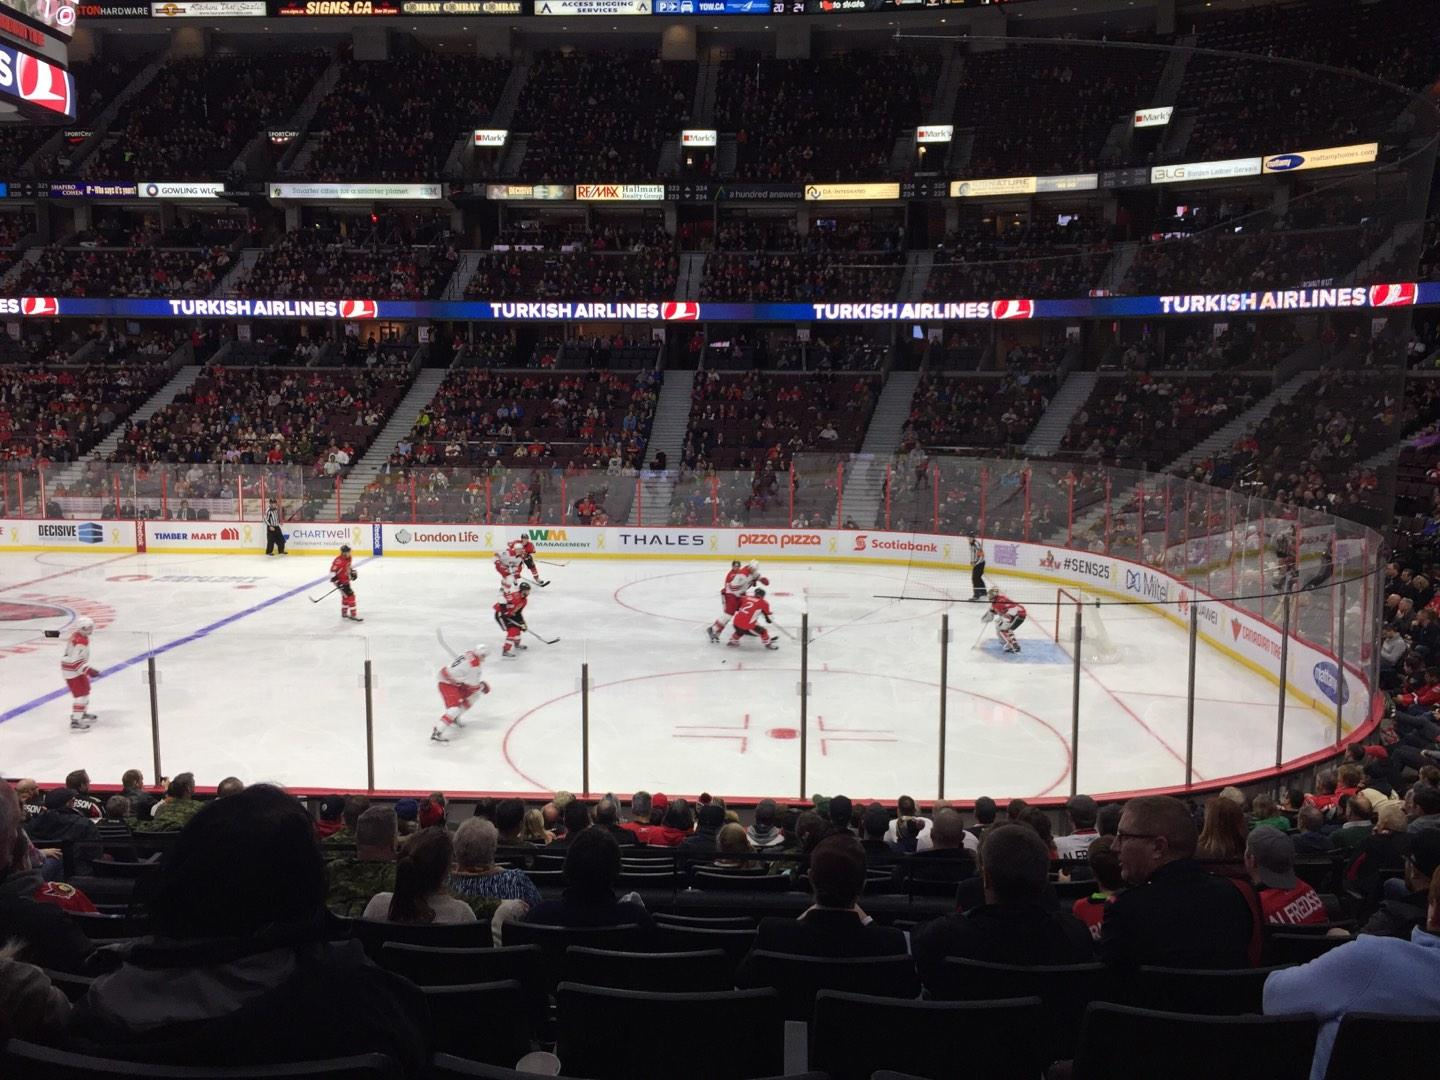 Canadian Tire Centre Section 103 Row P Seat 9